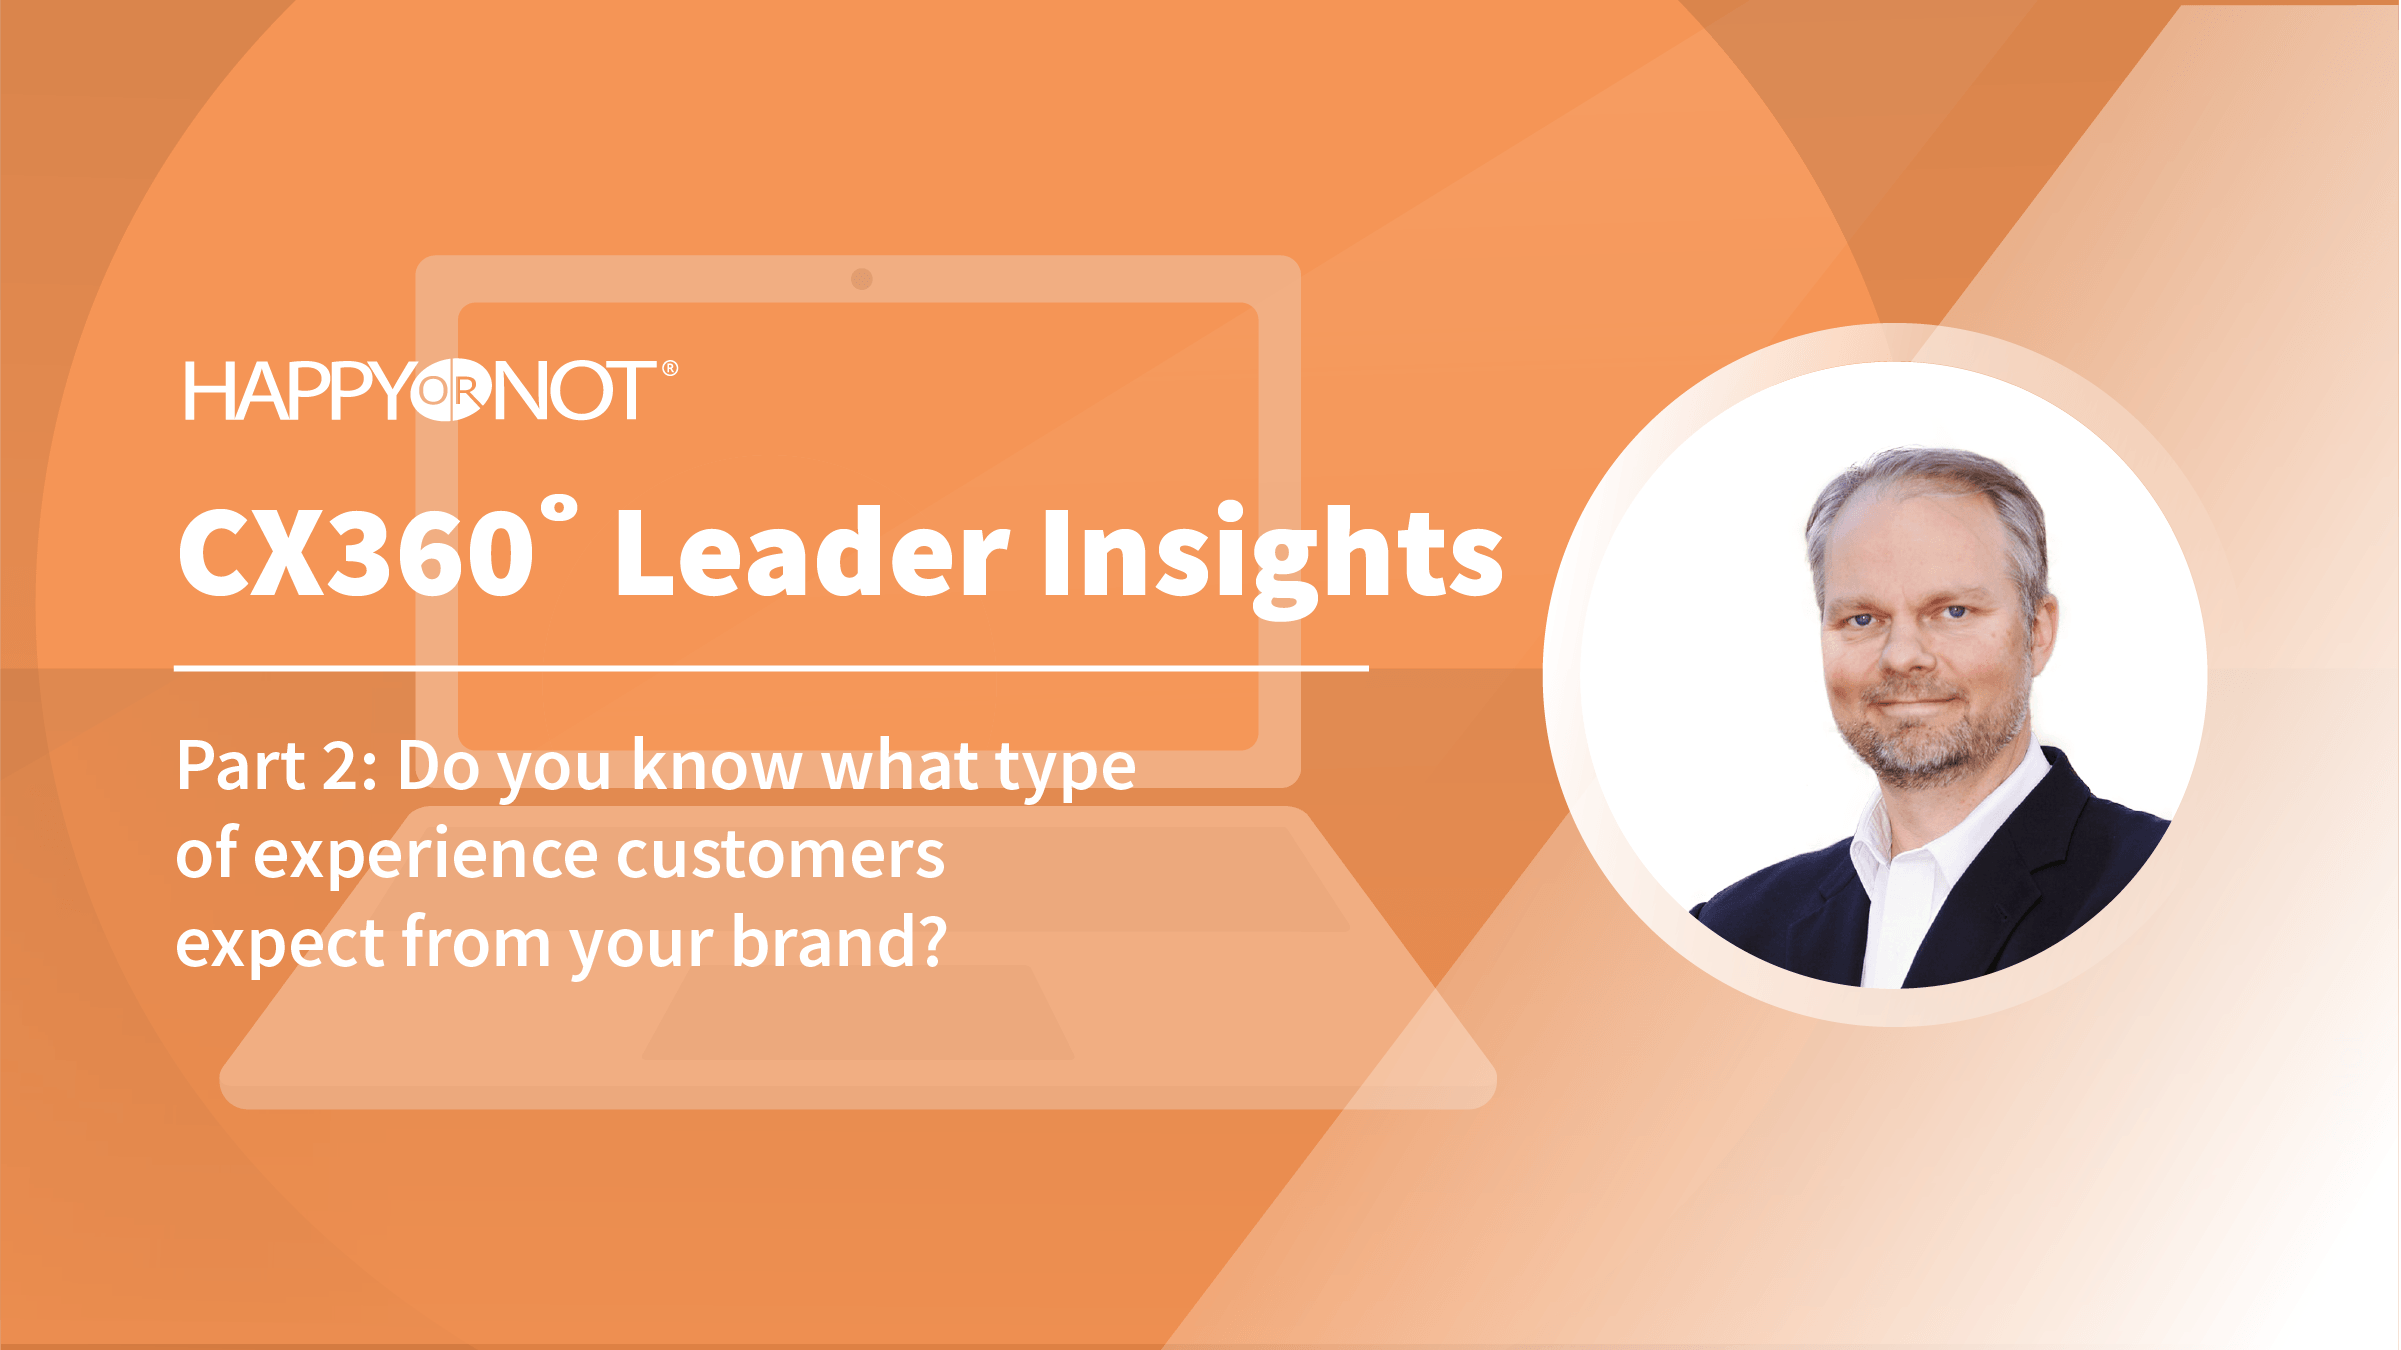 HappyOrNot CX360 Leader Insights: Part 2: Do you know what type of experience customers expect from your brand?